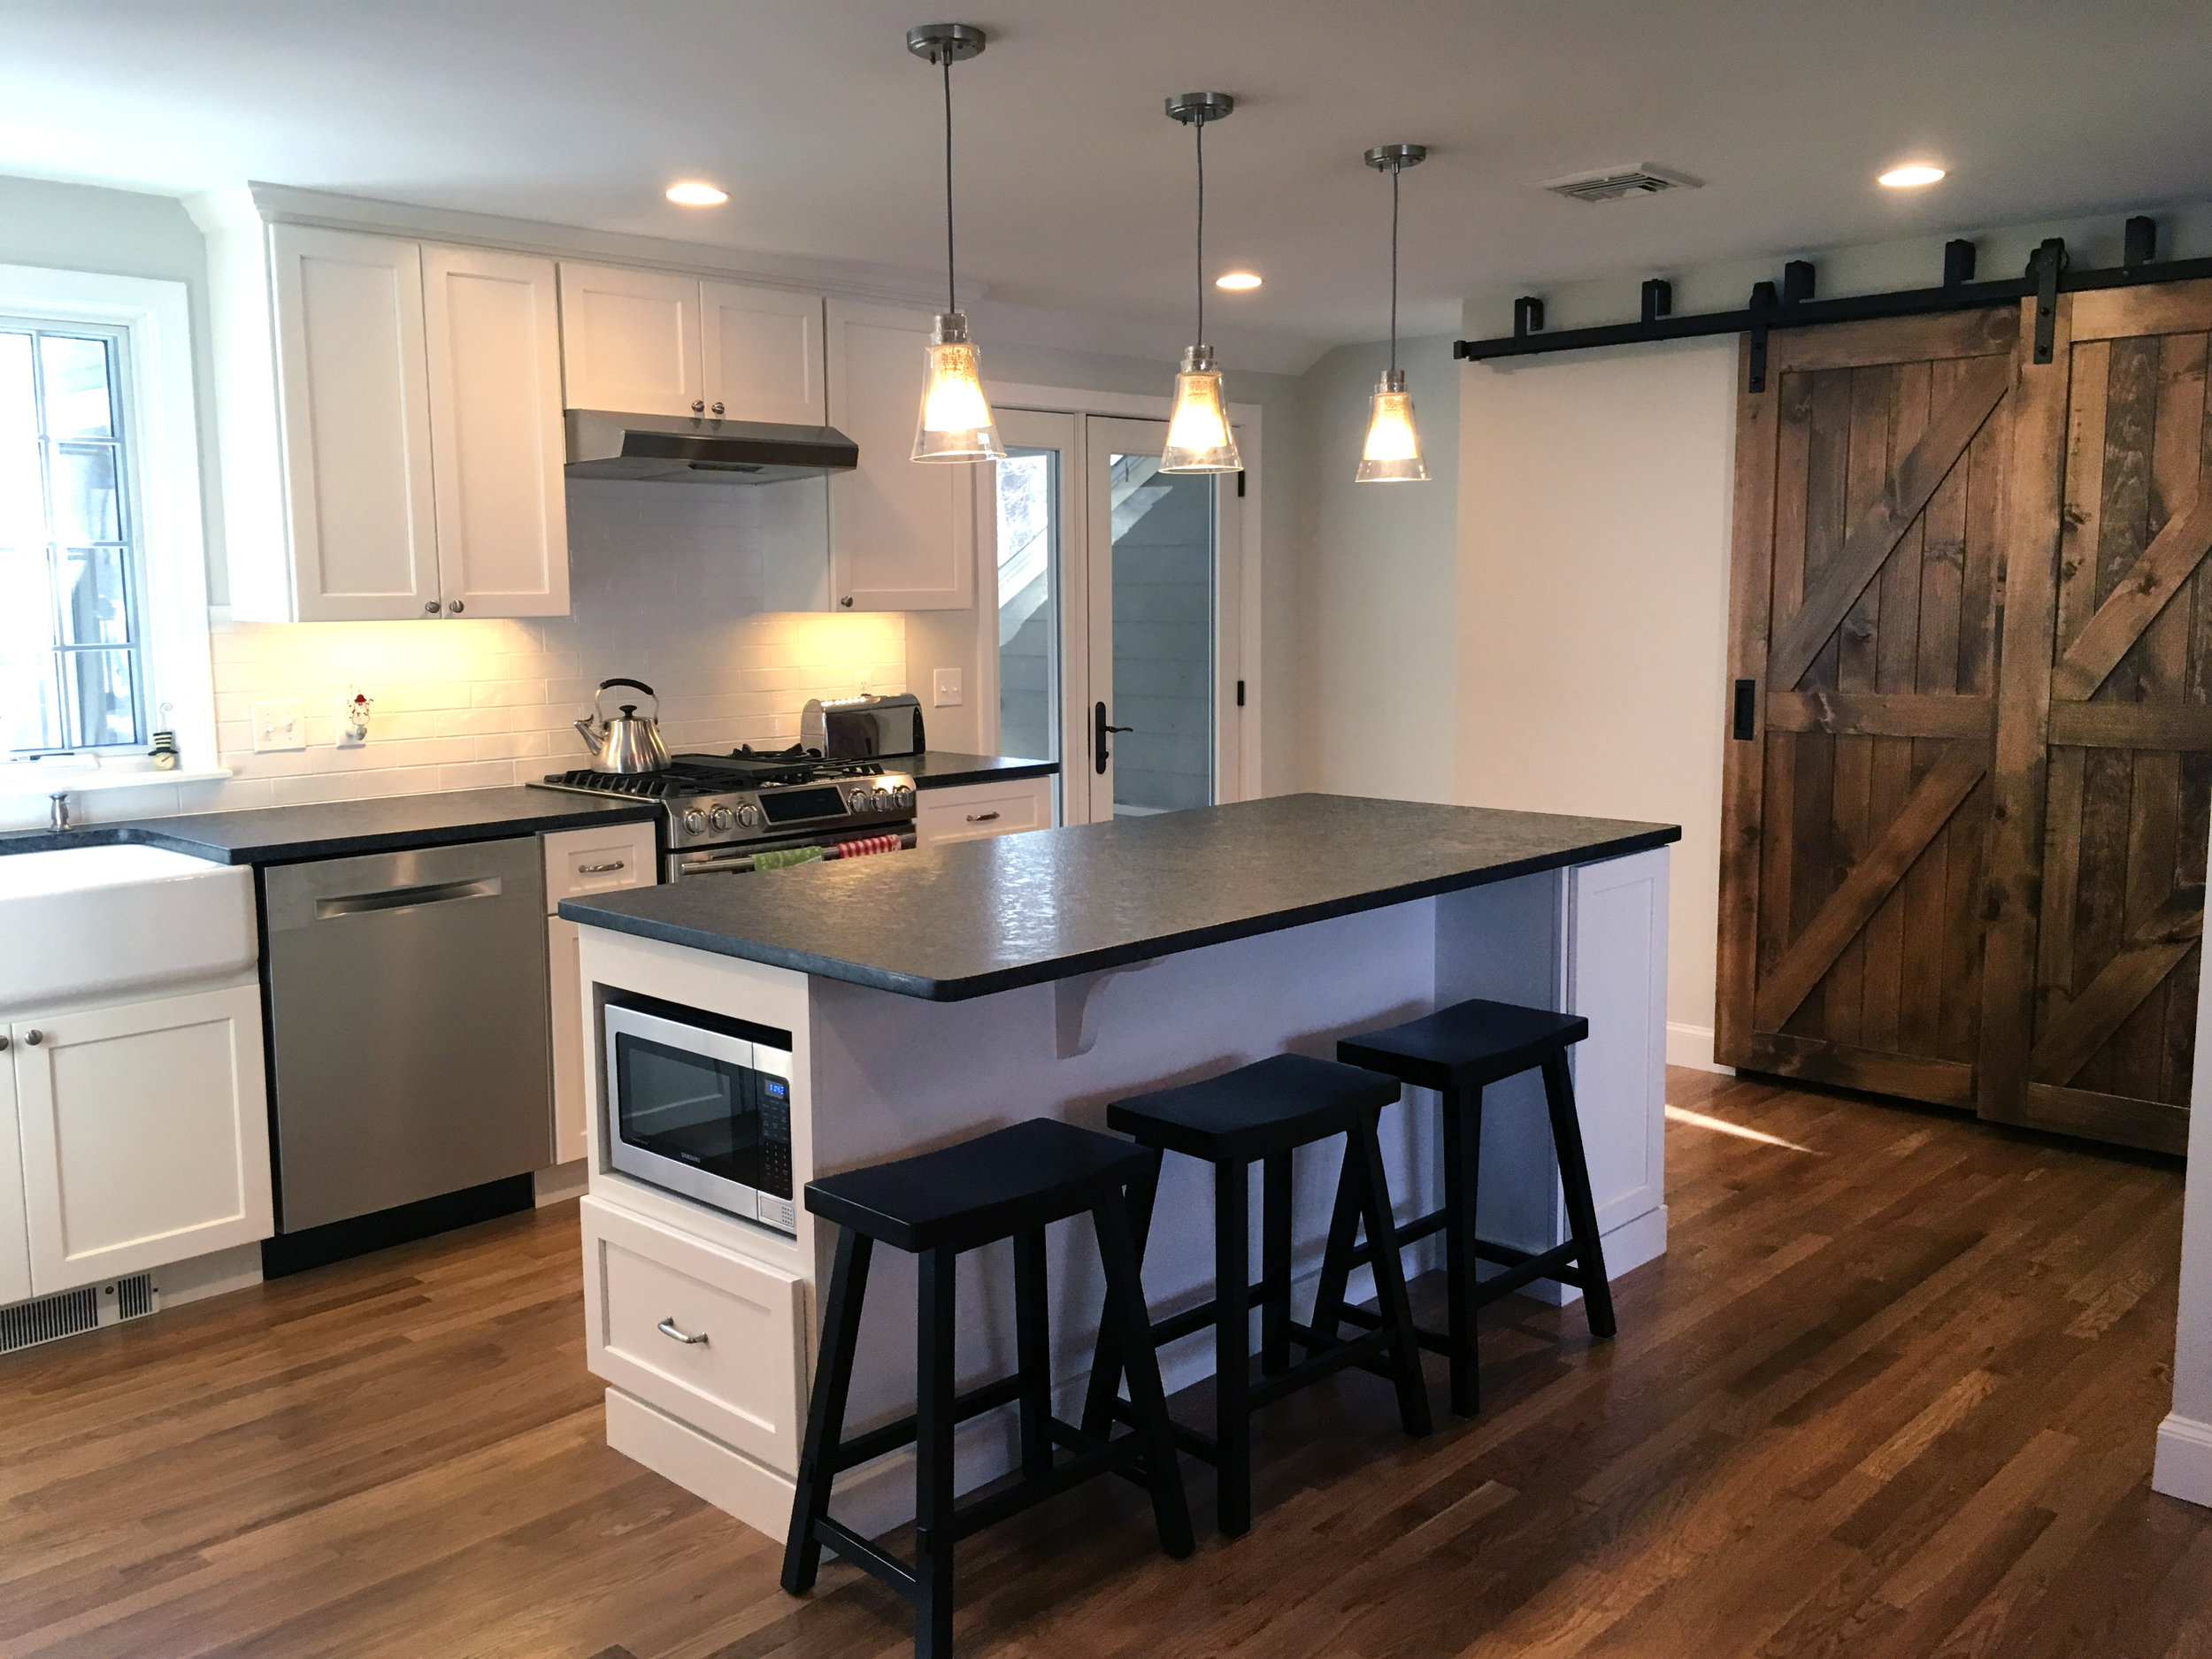 Barn Door Kitchen Renovation | Dickinson Architects, LLC | Bedford, MA